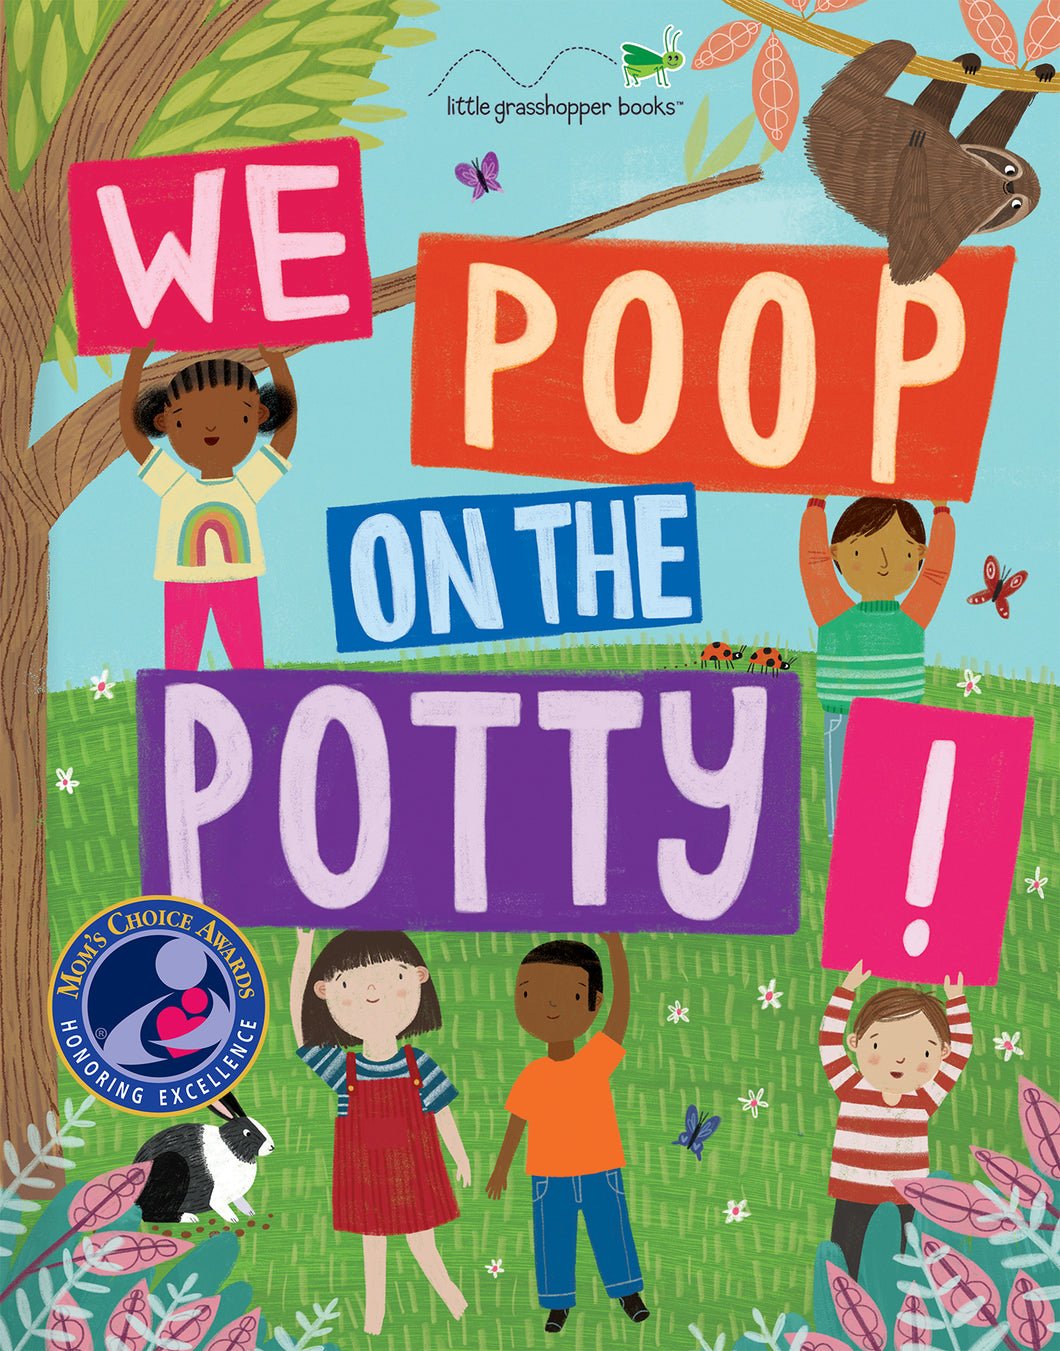 We Poop on the Potty!